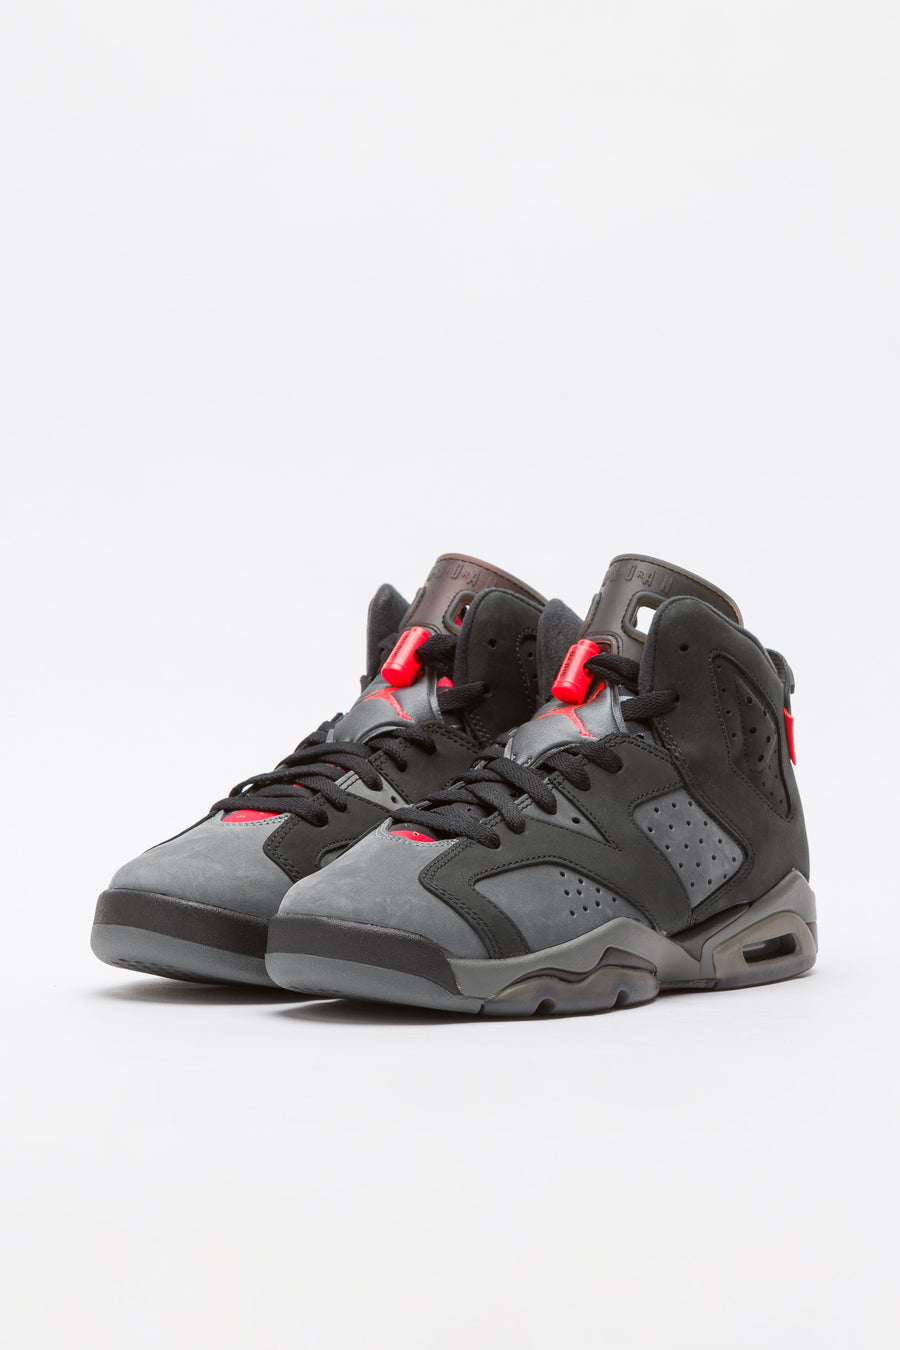 Jordan Air Jordan 6 Retro Paris Saint-Germain Big Kids in Grey/Black - Notre